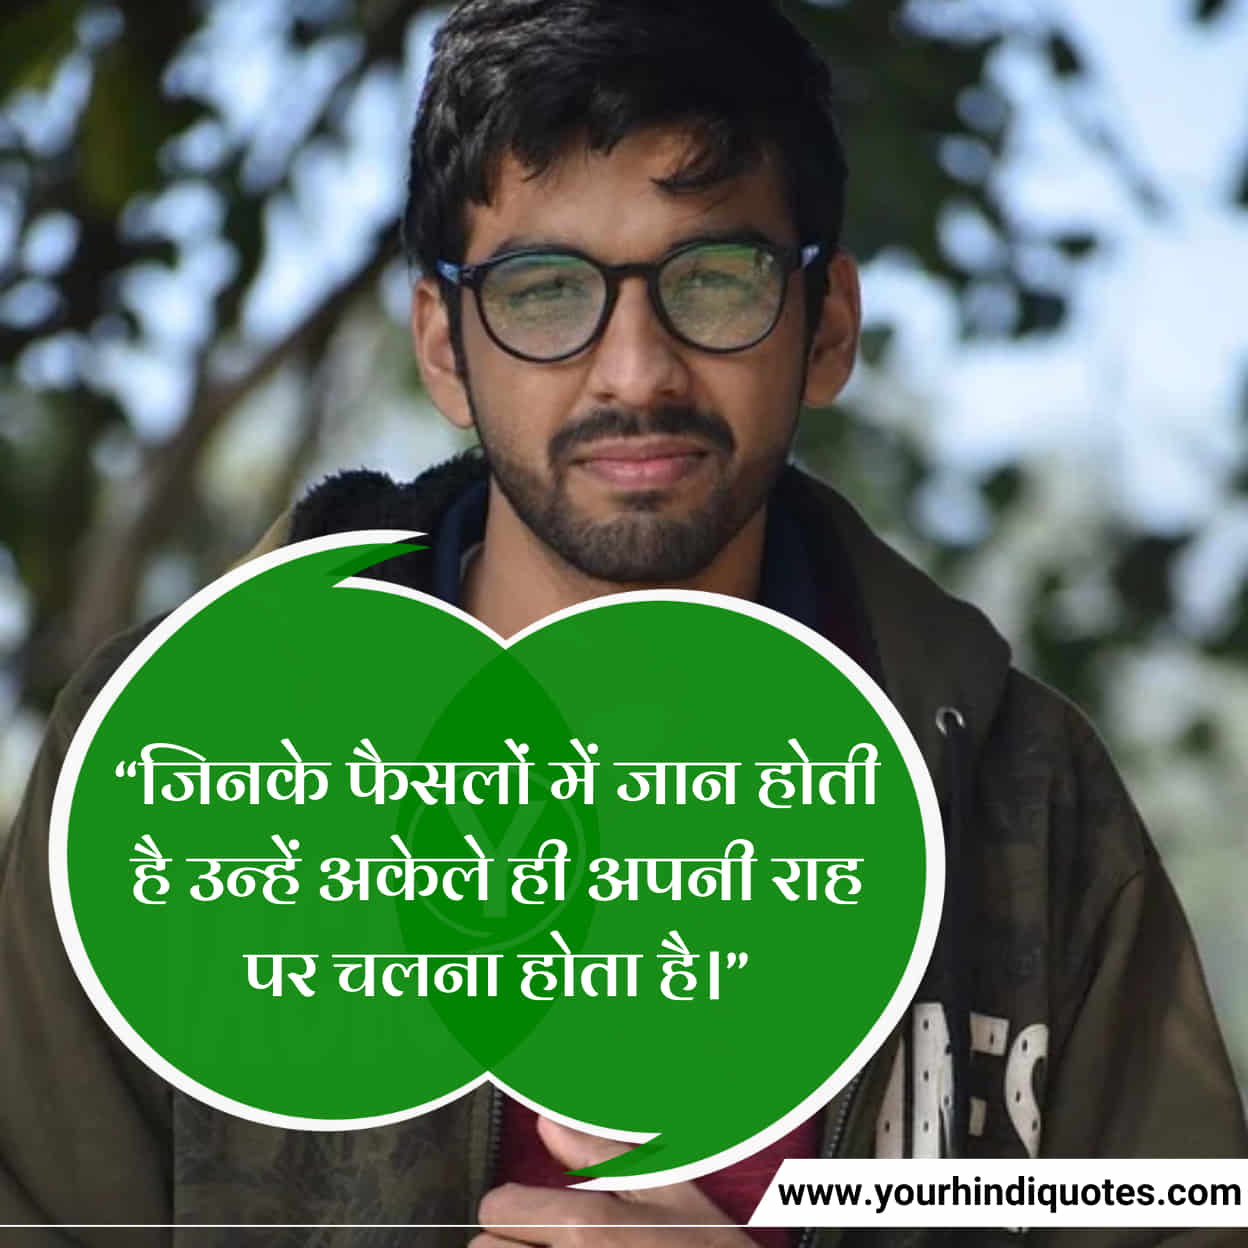 Best Students Quotes